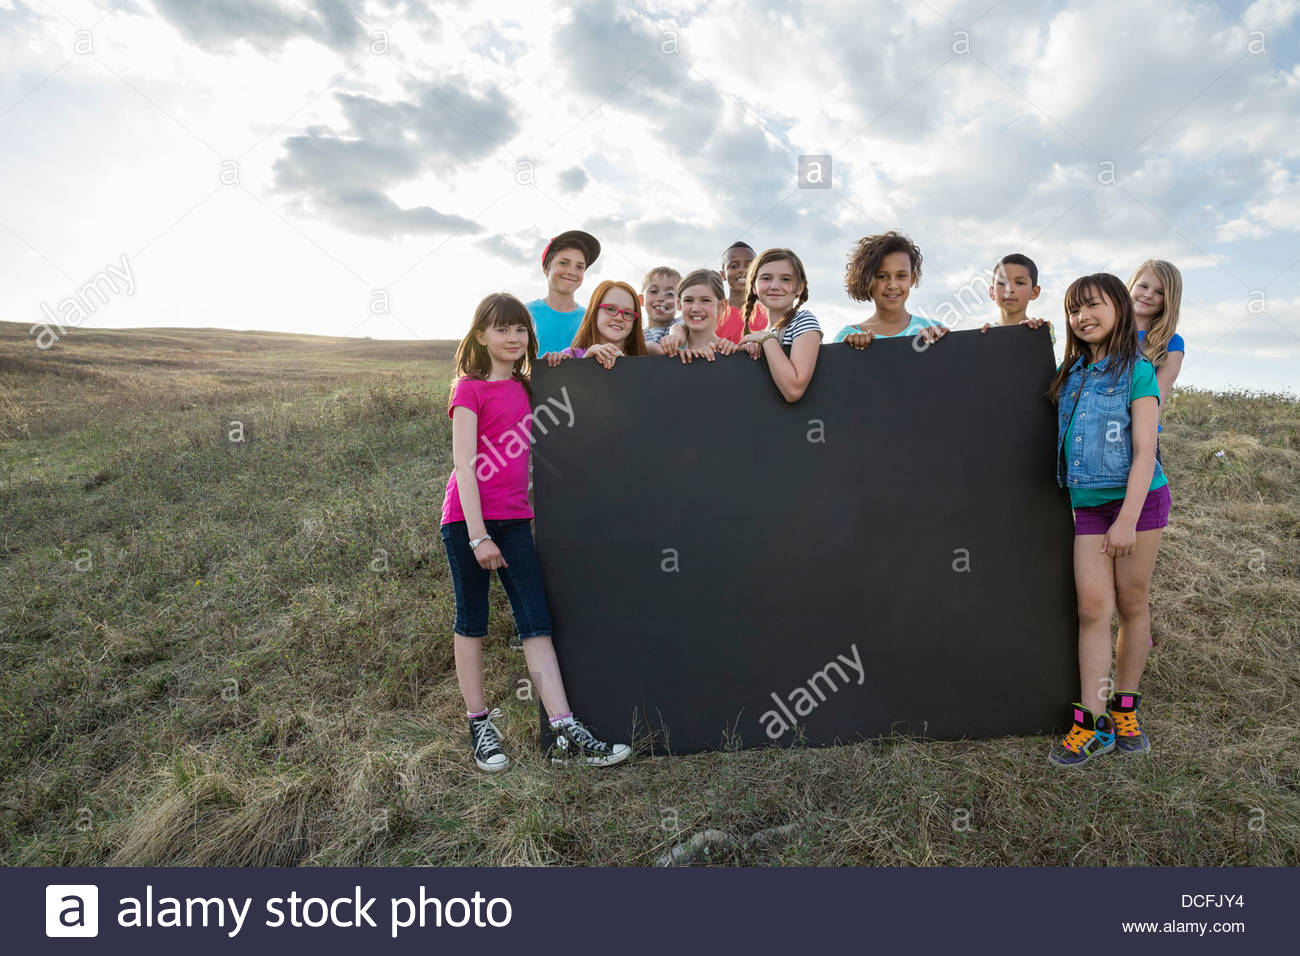 Group of kids outdoors holding blank sign board - Stock Image